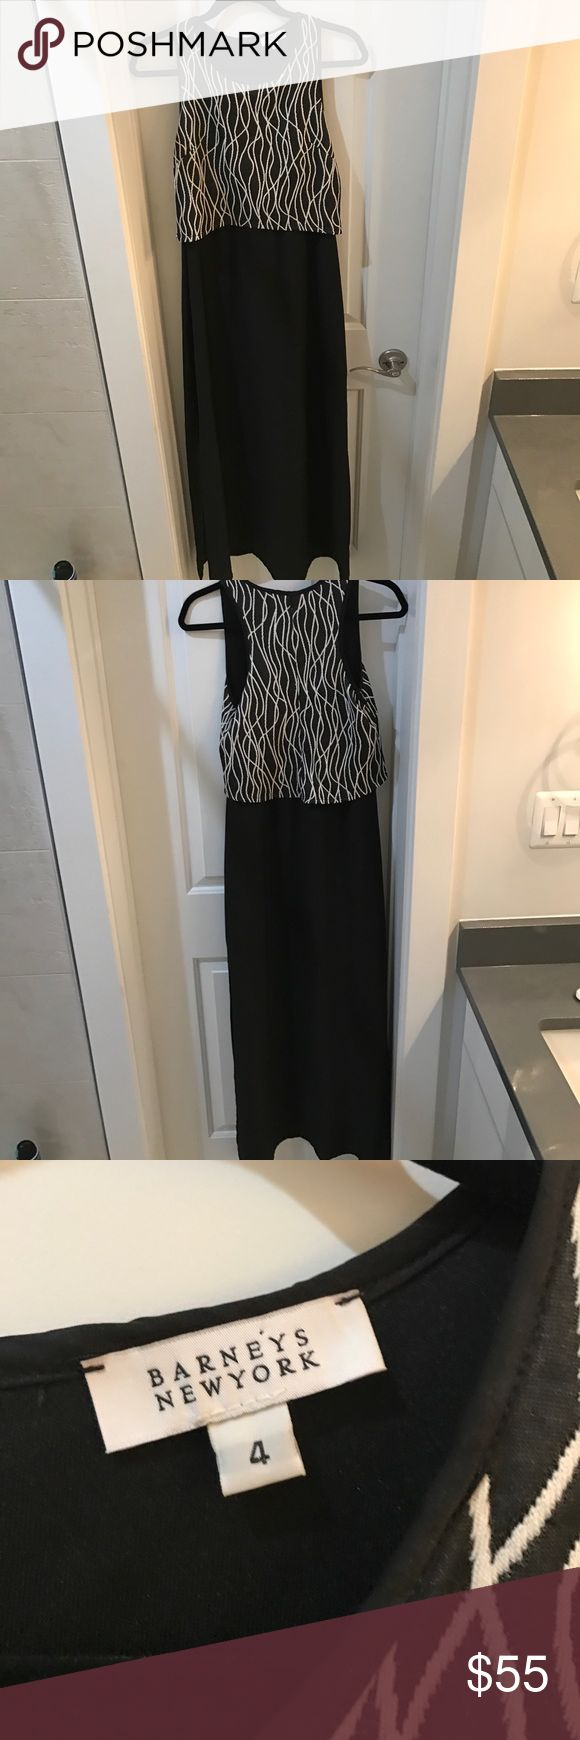 Barneys New York Black Maxi Dress - Size 4 🖤 Barneys New York Size 4 Black Maxi Dress with textured black and white top. High slit but built in short slip to keep you safe ☺️ Purchased at Barneys New York. Perfect for summer date nights or brunch with your girl friends. Worn but like new. Barneys New York Dresses Maxi